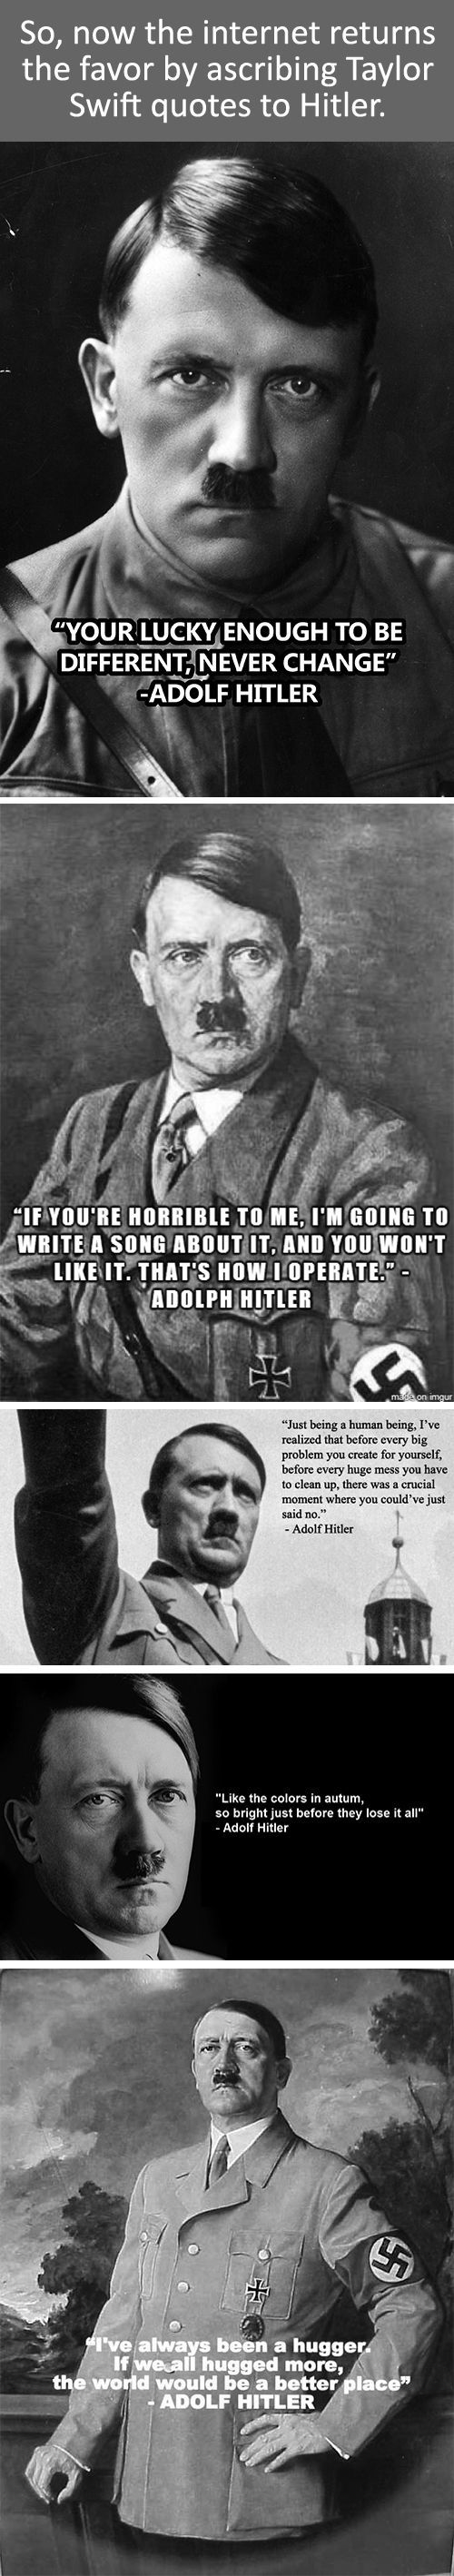 How about Taylor Swift quotes as stated by Hitler? - http://geekstumbles.com/funny/lolsnaps/how-about-taylor-swift-quotes-as-stated-by-hitler/